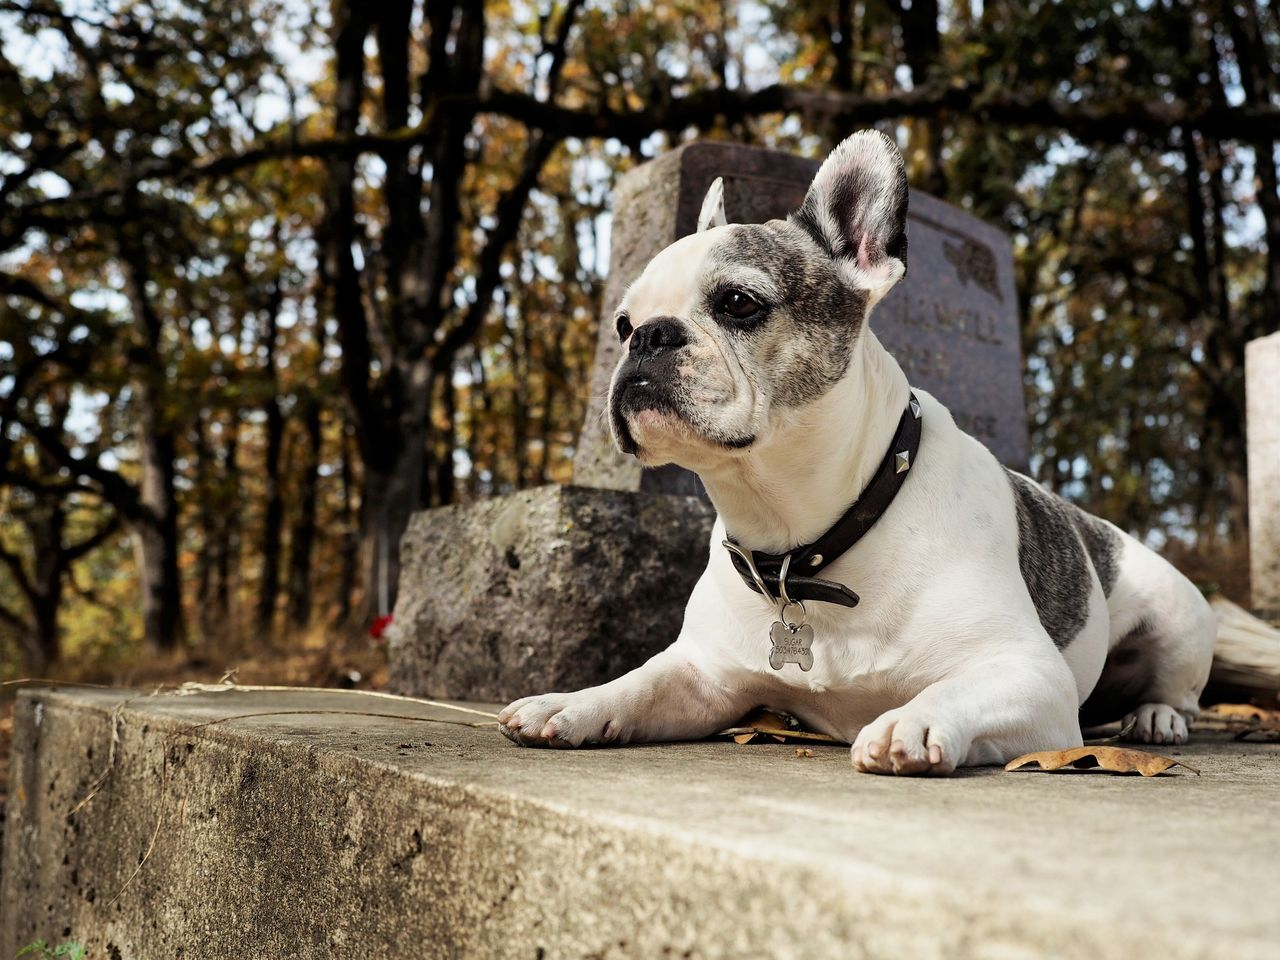 Animal Themes Branch Close-up Day Dog Domestic Animals Frenchbulldog Frenchie Graveyard Graveyard Beauty Graveyard Collection Mammal Nature No People One Animal Outdoors Pets Tree Tree Trunk